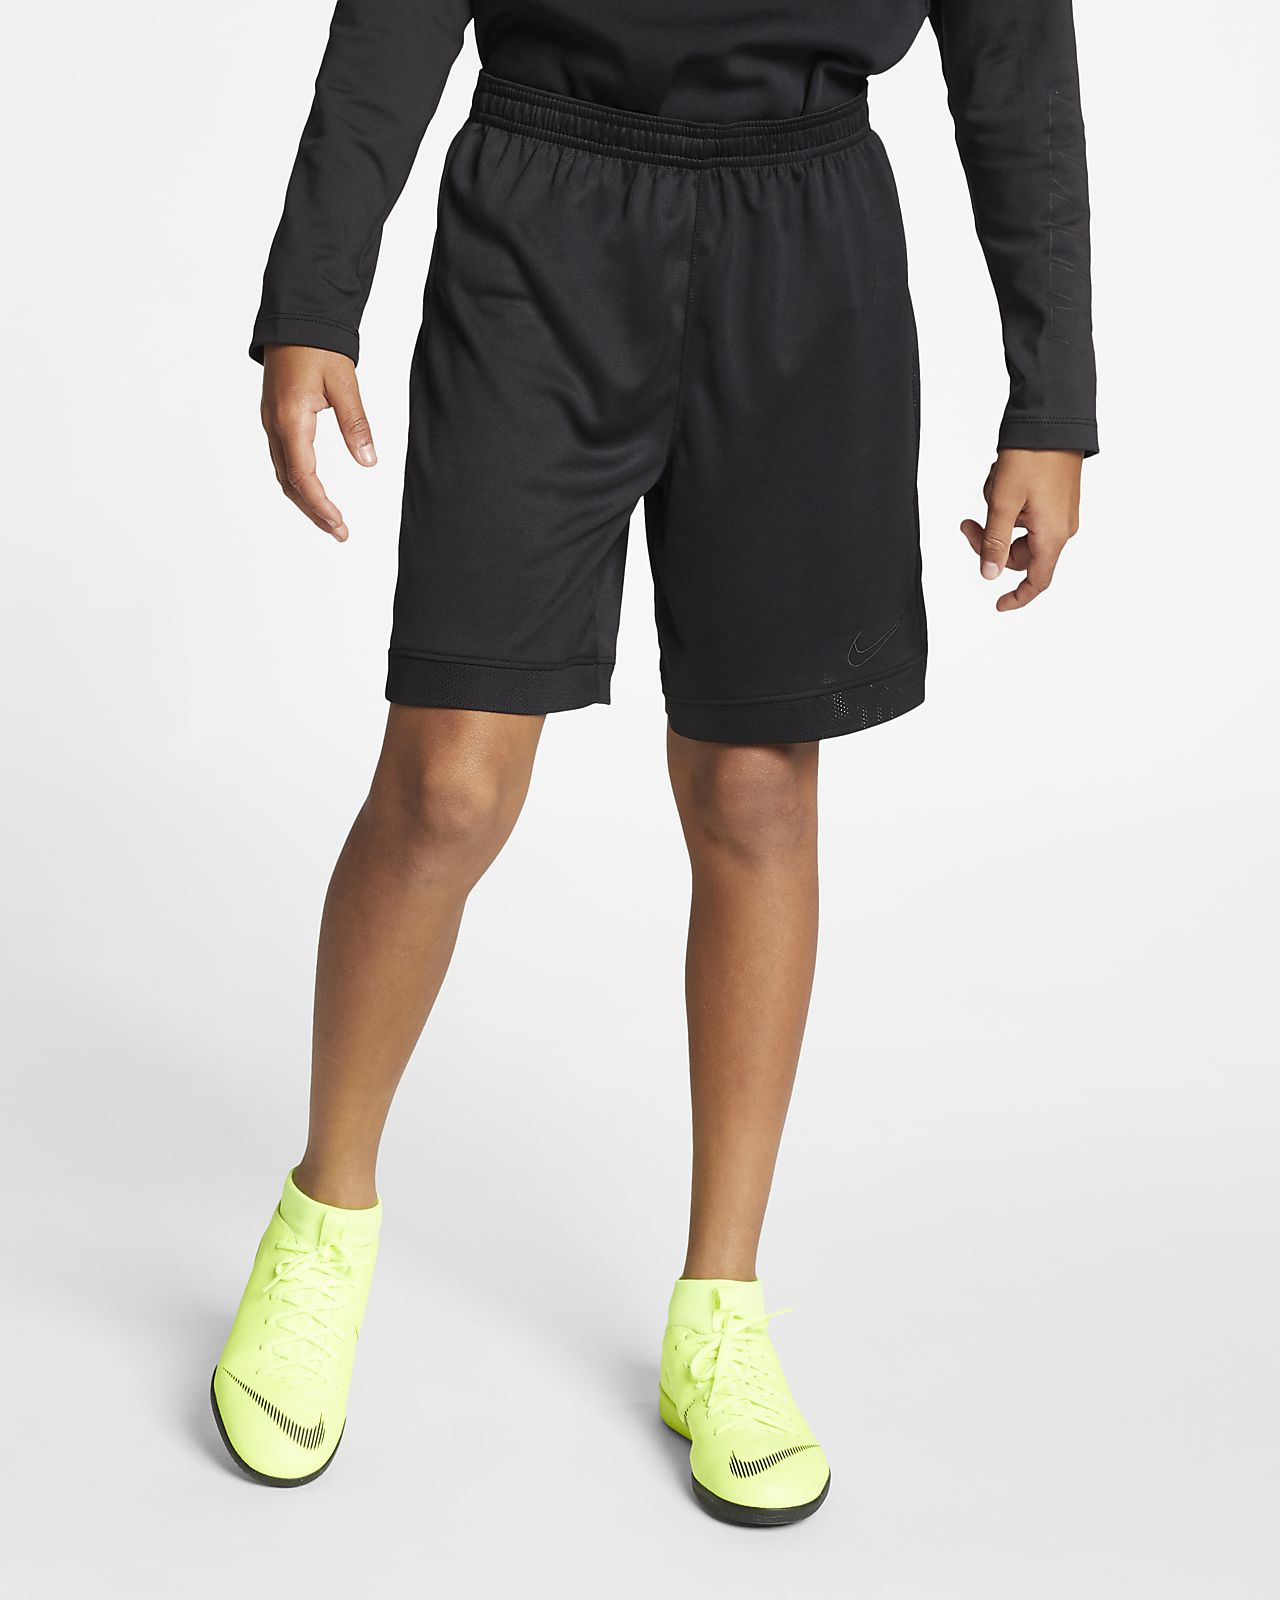 Nike Dri-FIT Academy Big Kids' Soccer Shorts. Nike.com